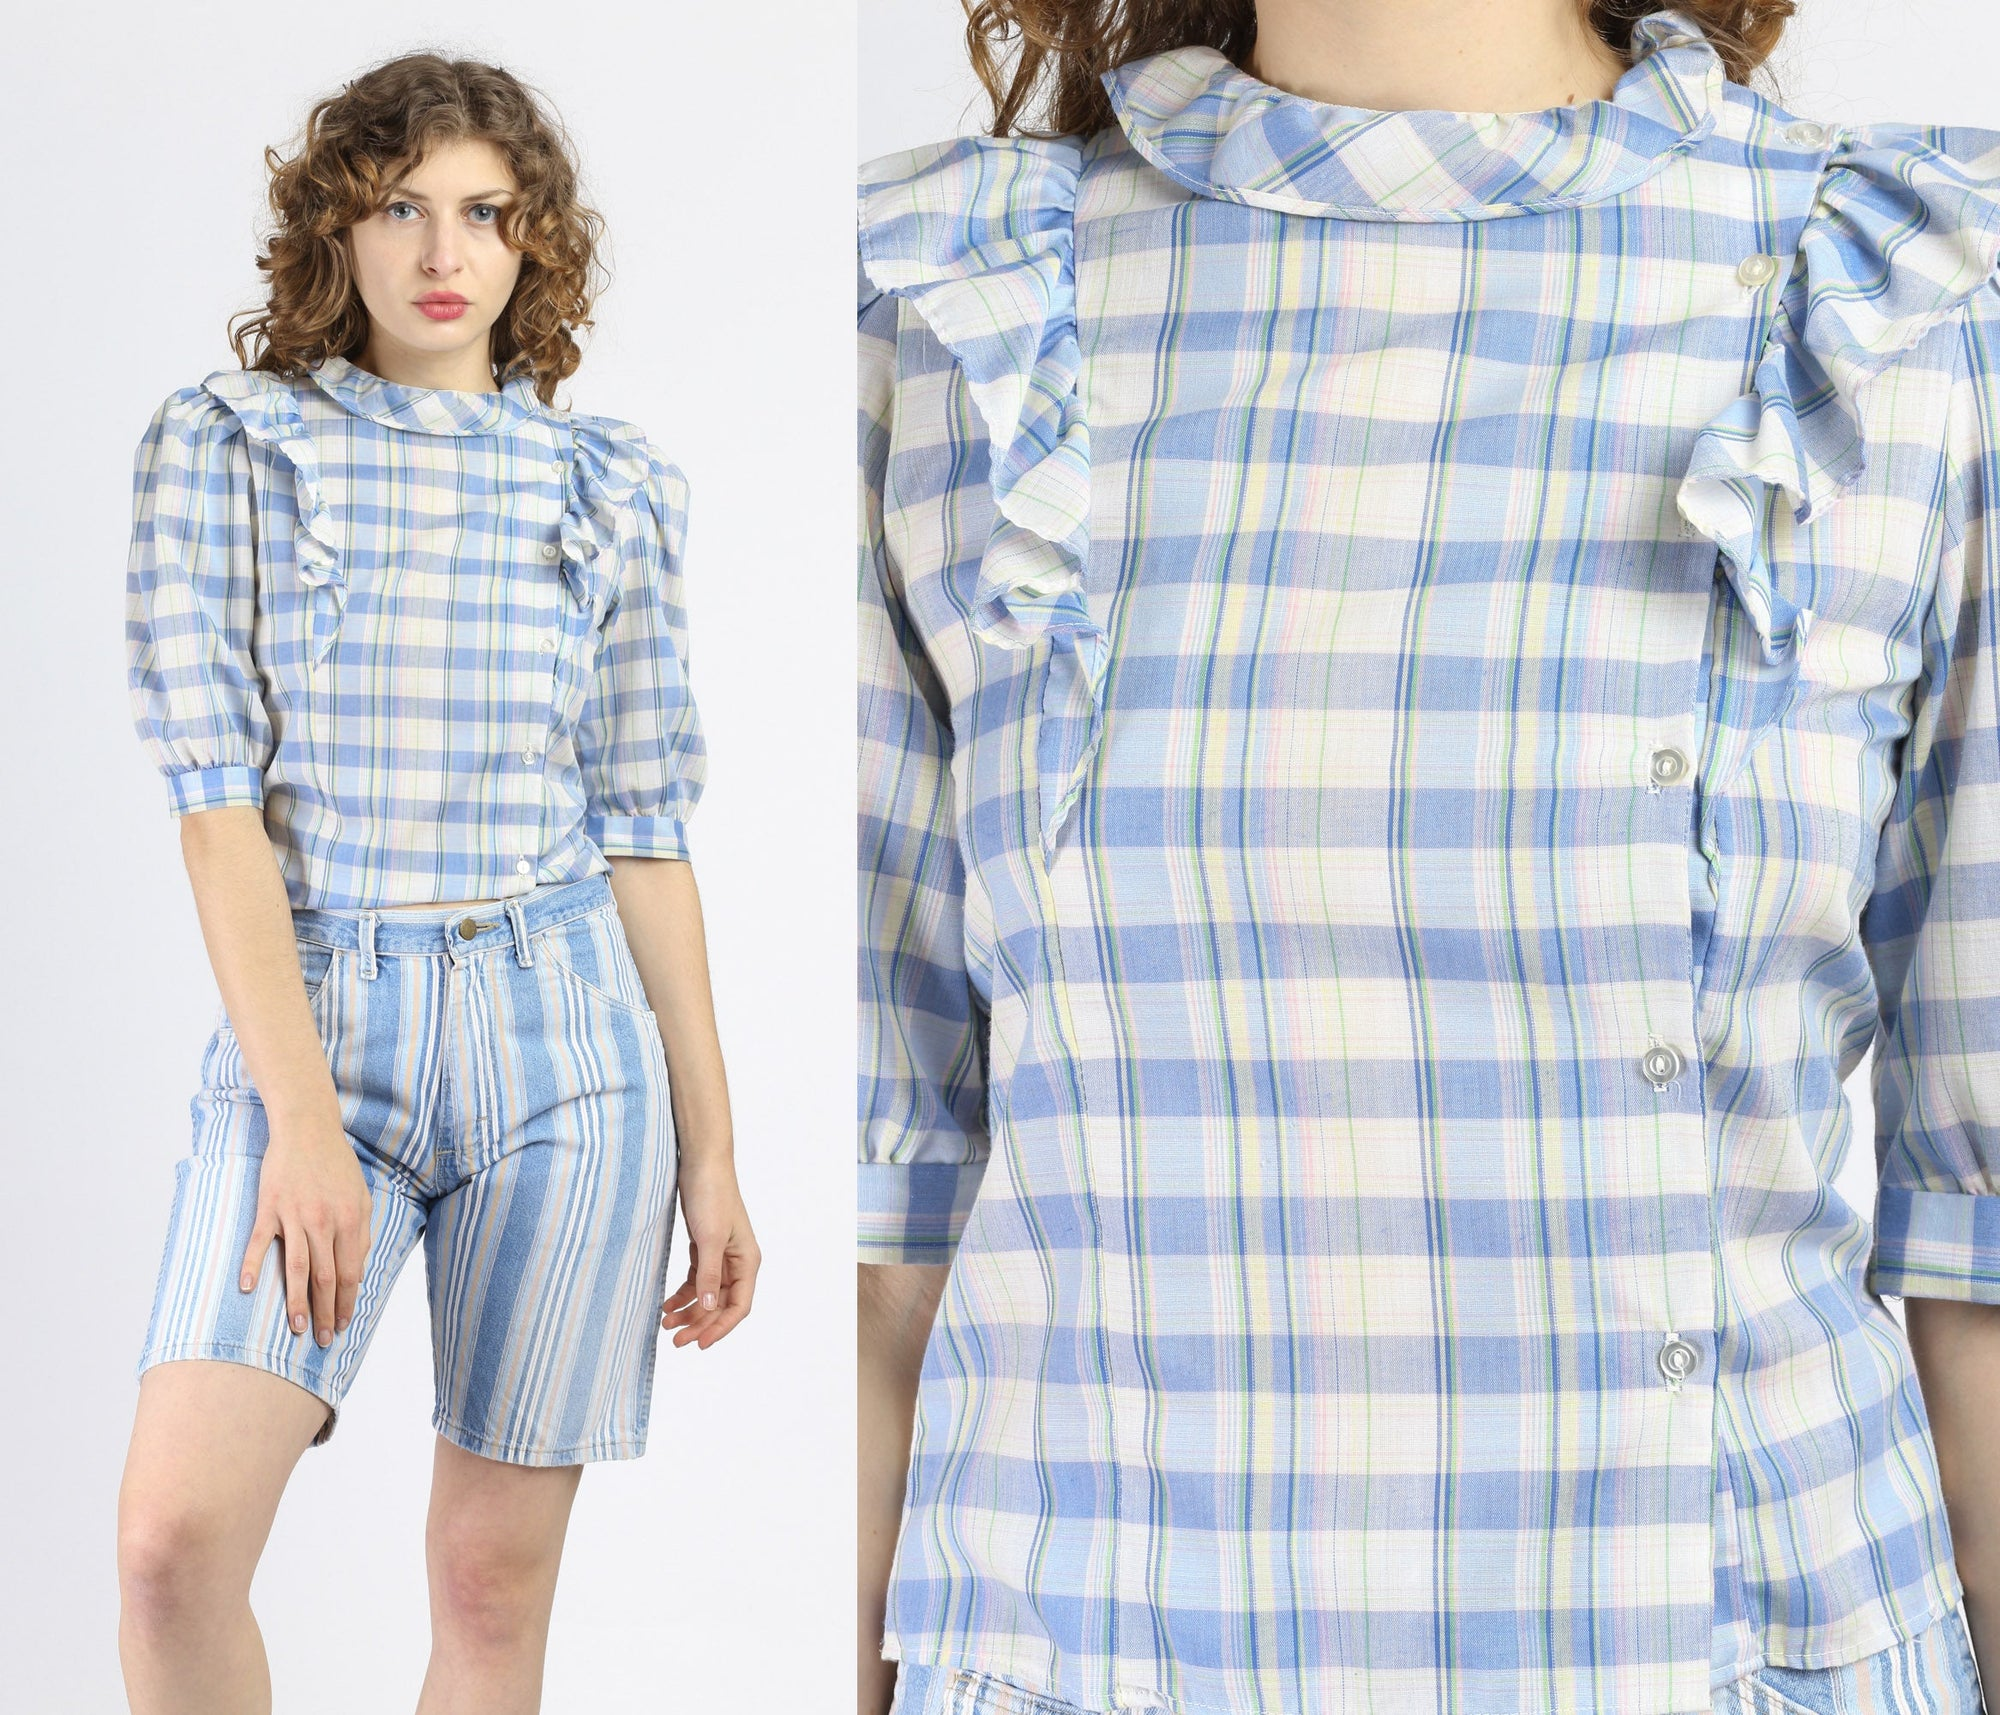 Vintage Blue Plaid Ruffle Blouse - Small